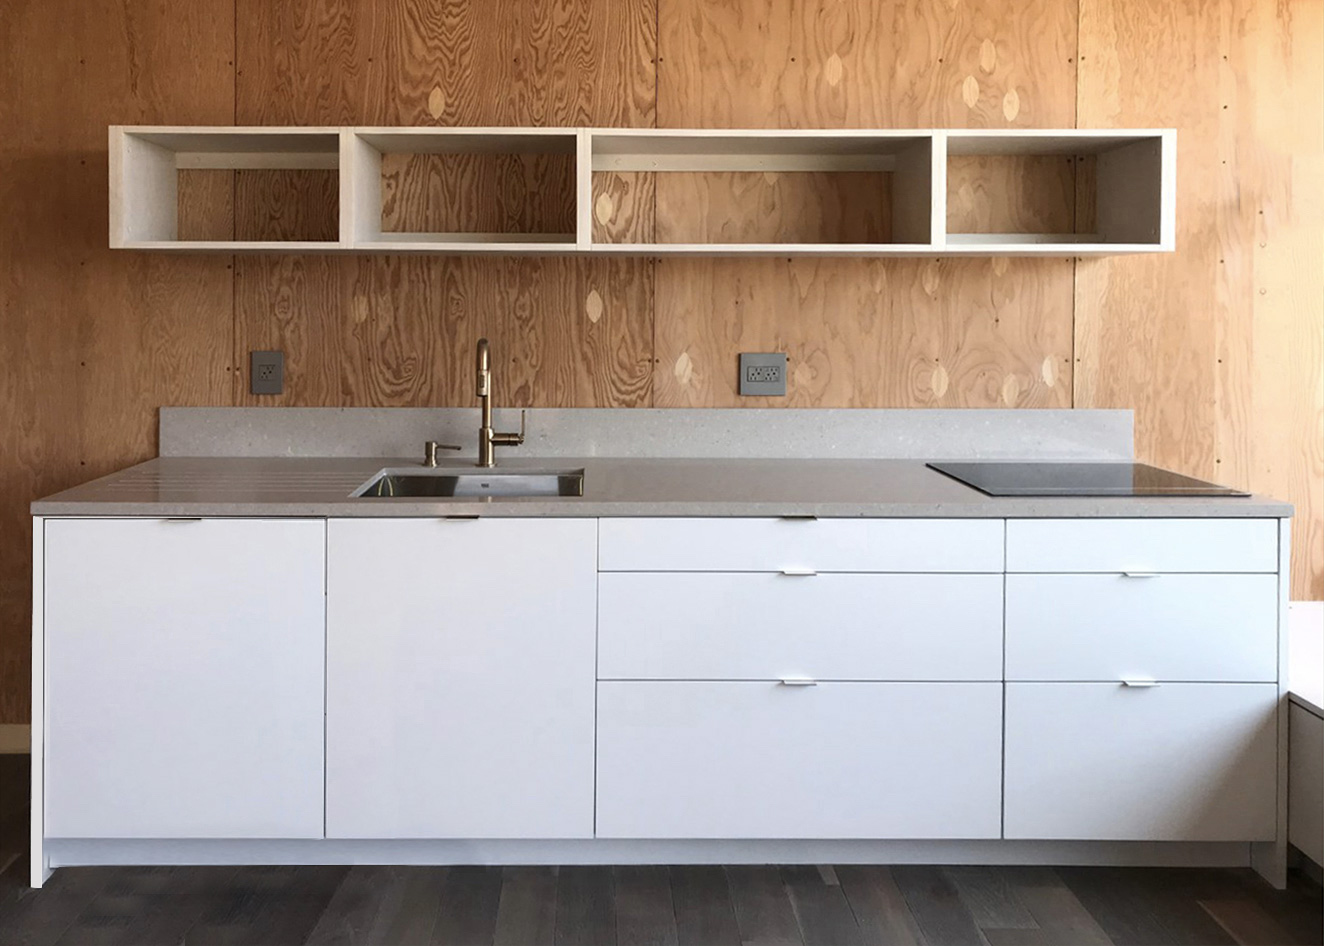 The cabinetry and fixtures of the lightHouse auxiliary dwelling units can be customised